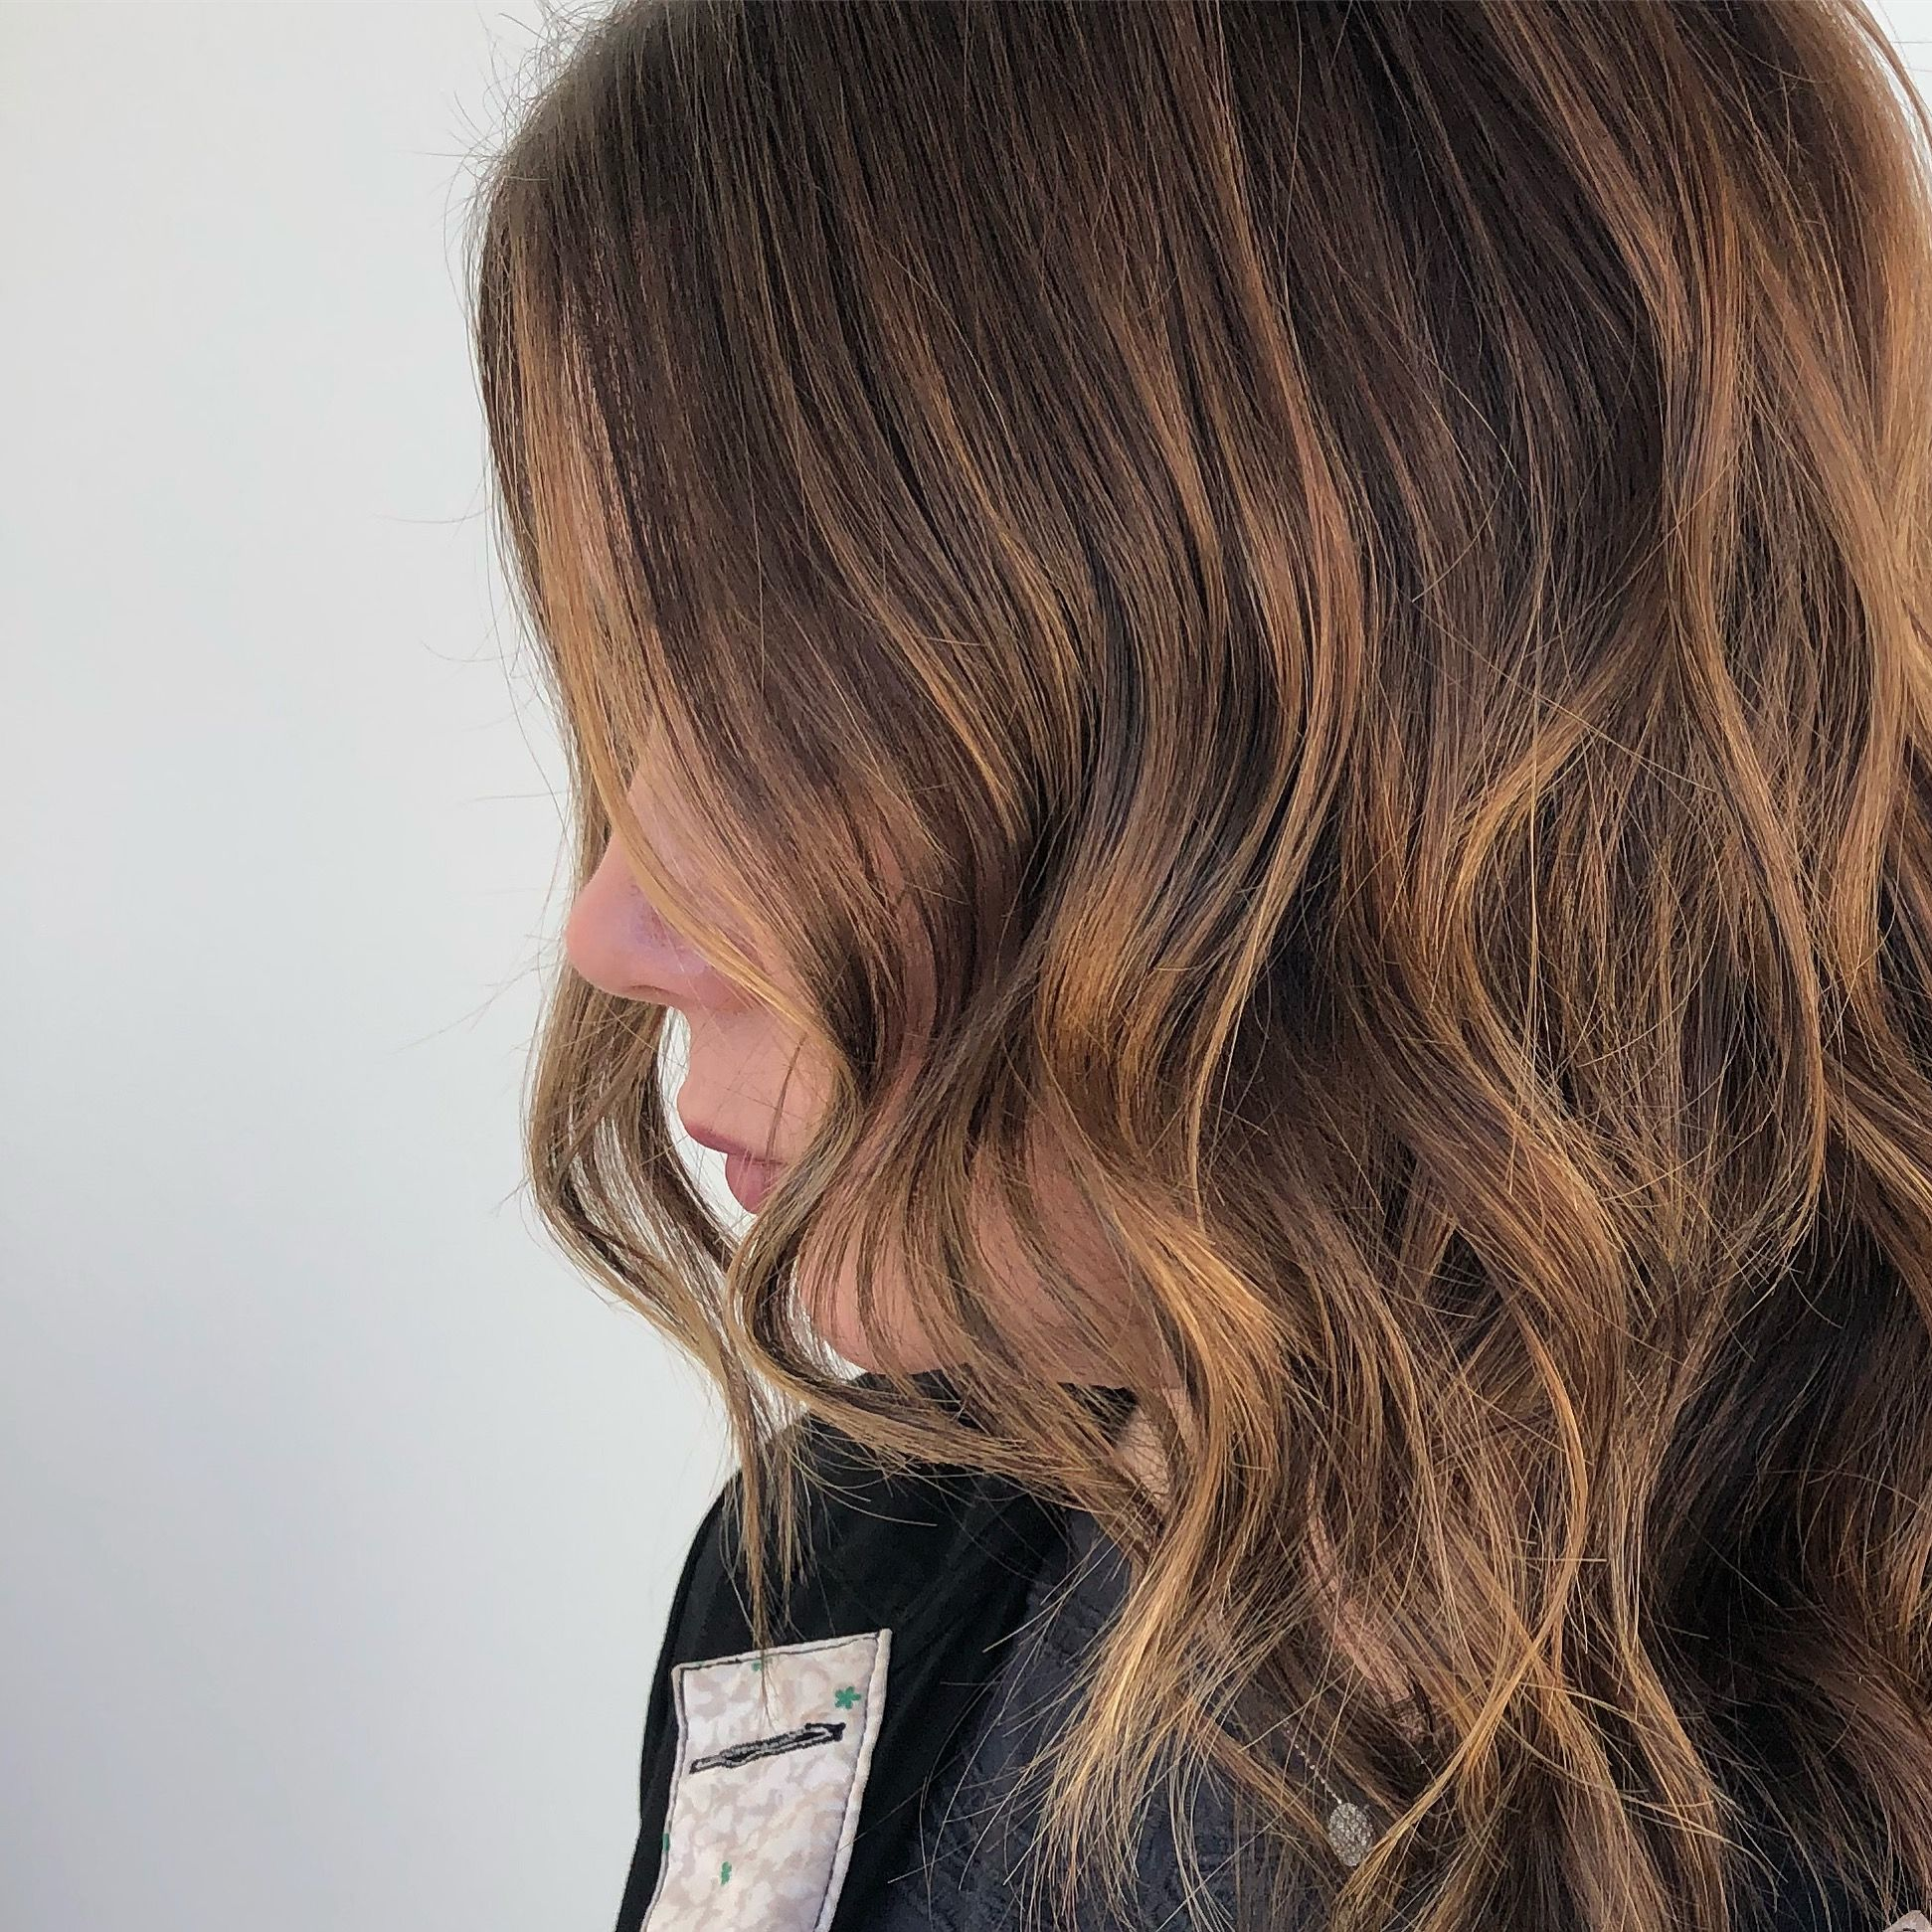 Balayage Hand Painting Hair Color Techniques Boliage Hair Baliage Hair